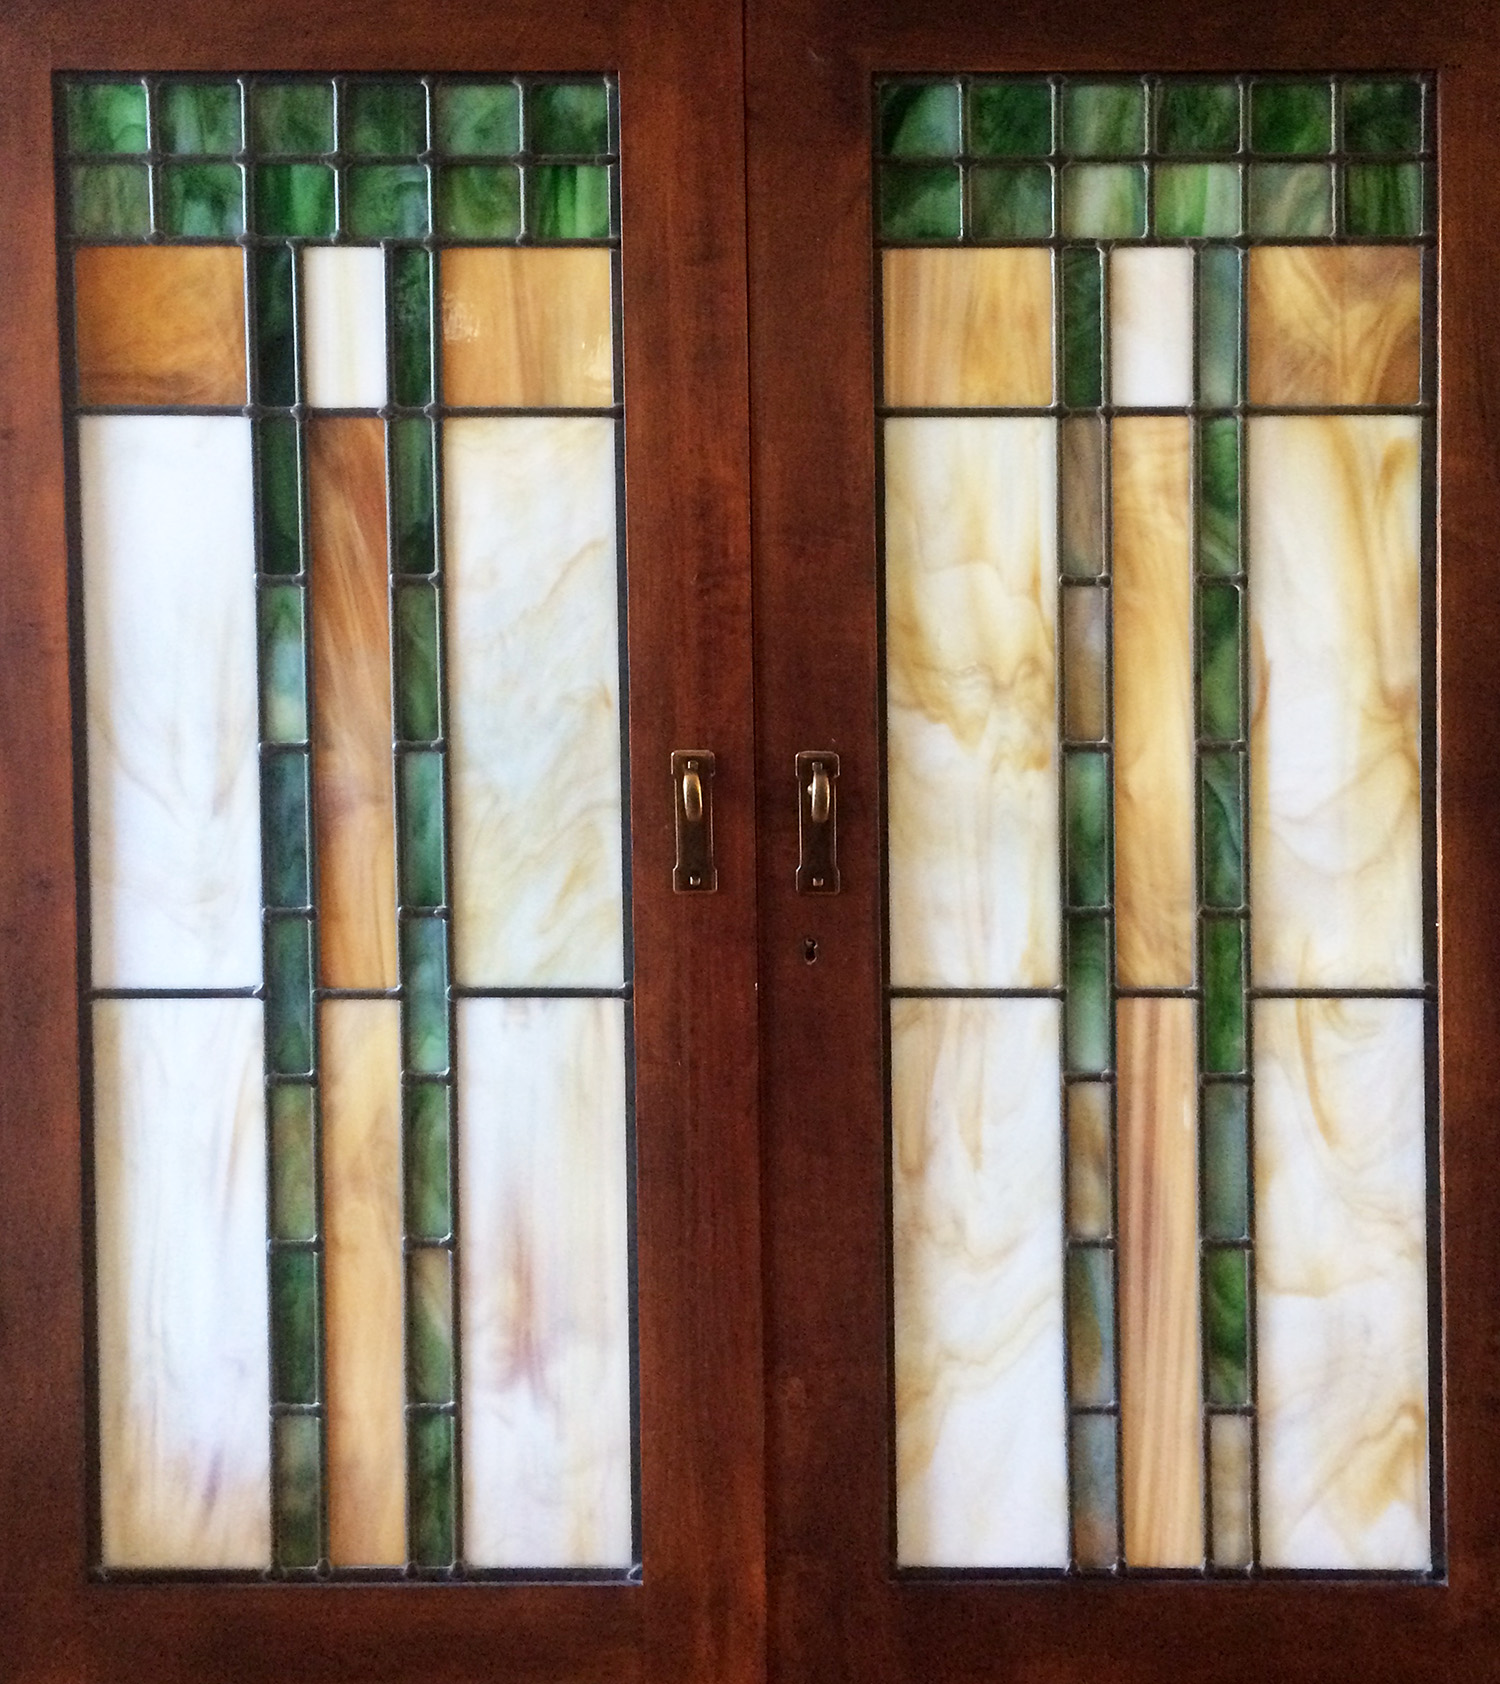 opaque colored glass craftsman geometric leaded glass stained glass window palo alto atherton california san francisco san jose.jpg